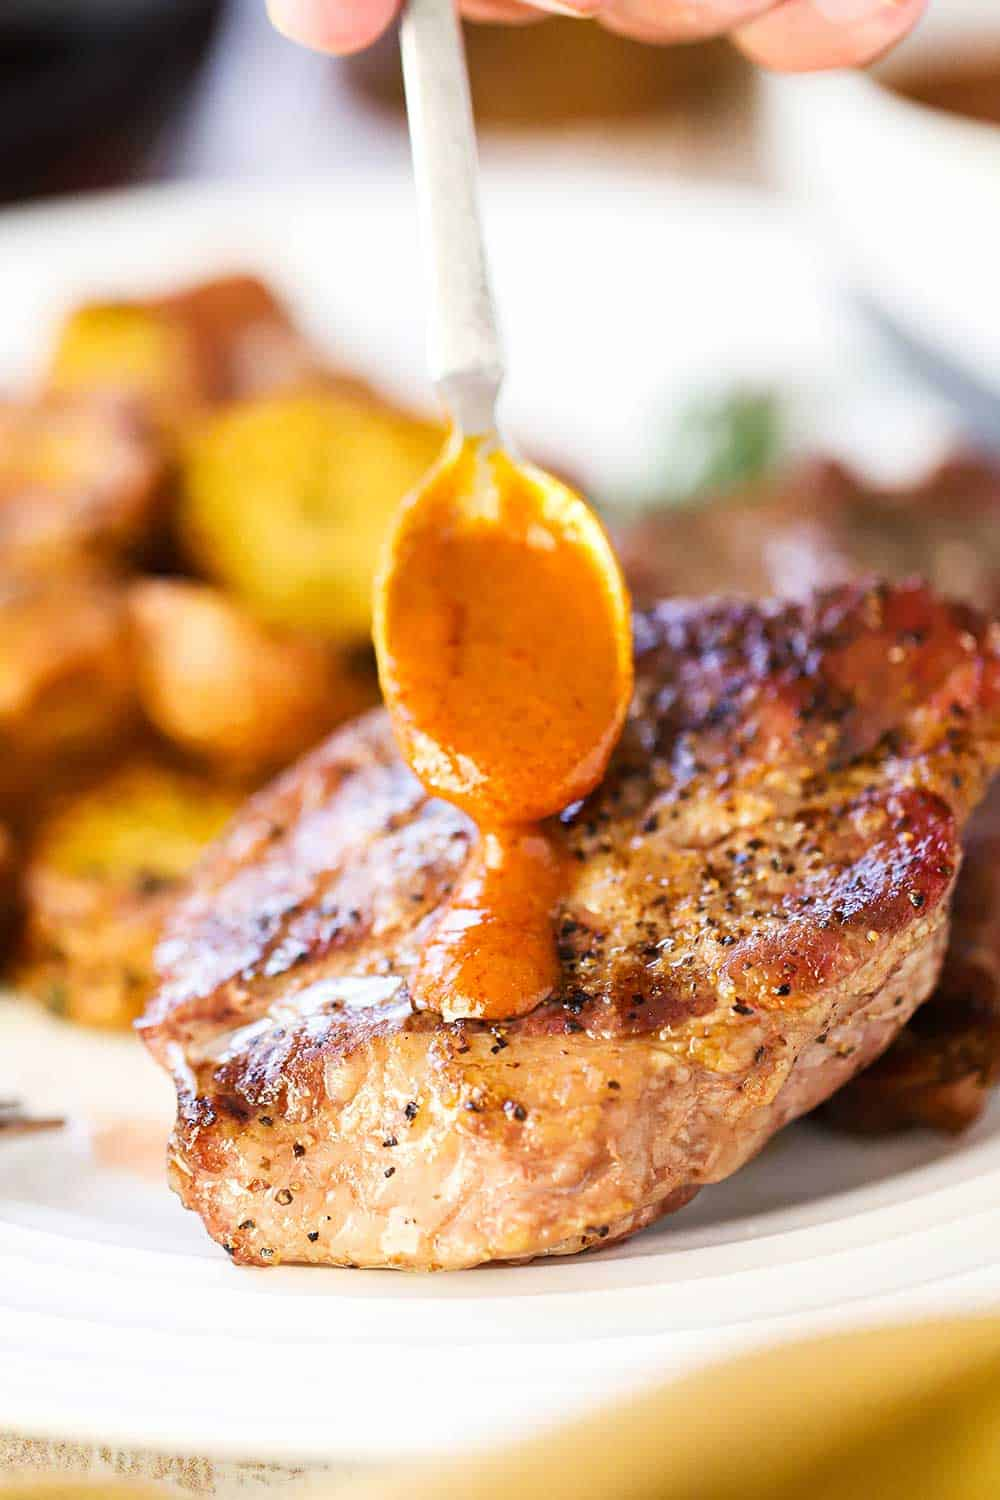 A hand holding a small spoon with steak sauce on it drizzling over a pork steak on a white plate next to roasted potatoes.